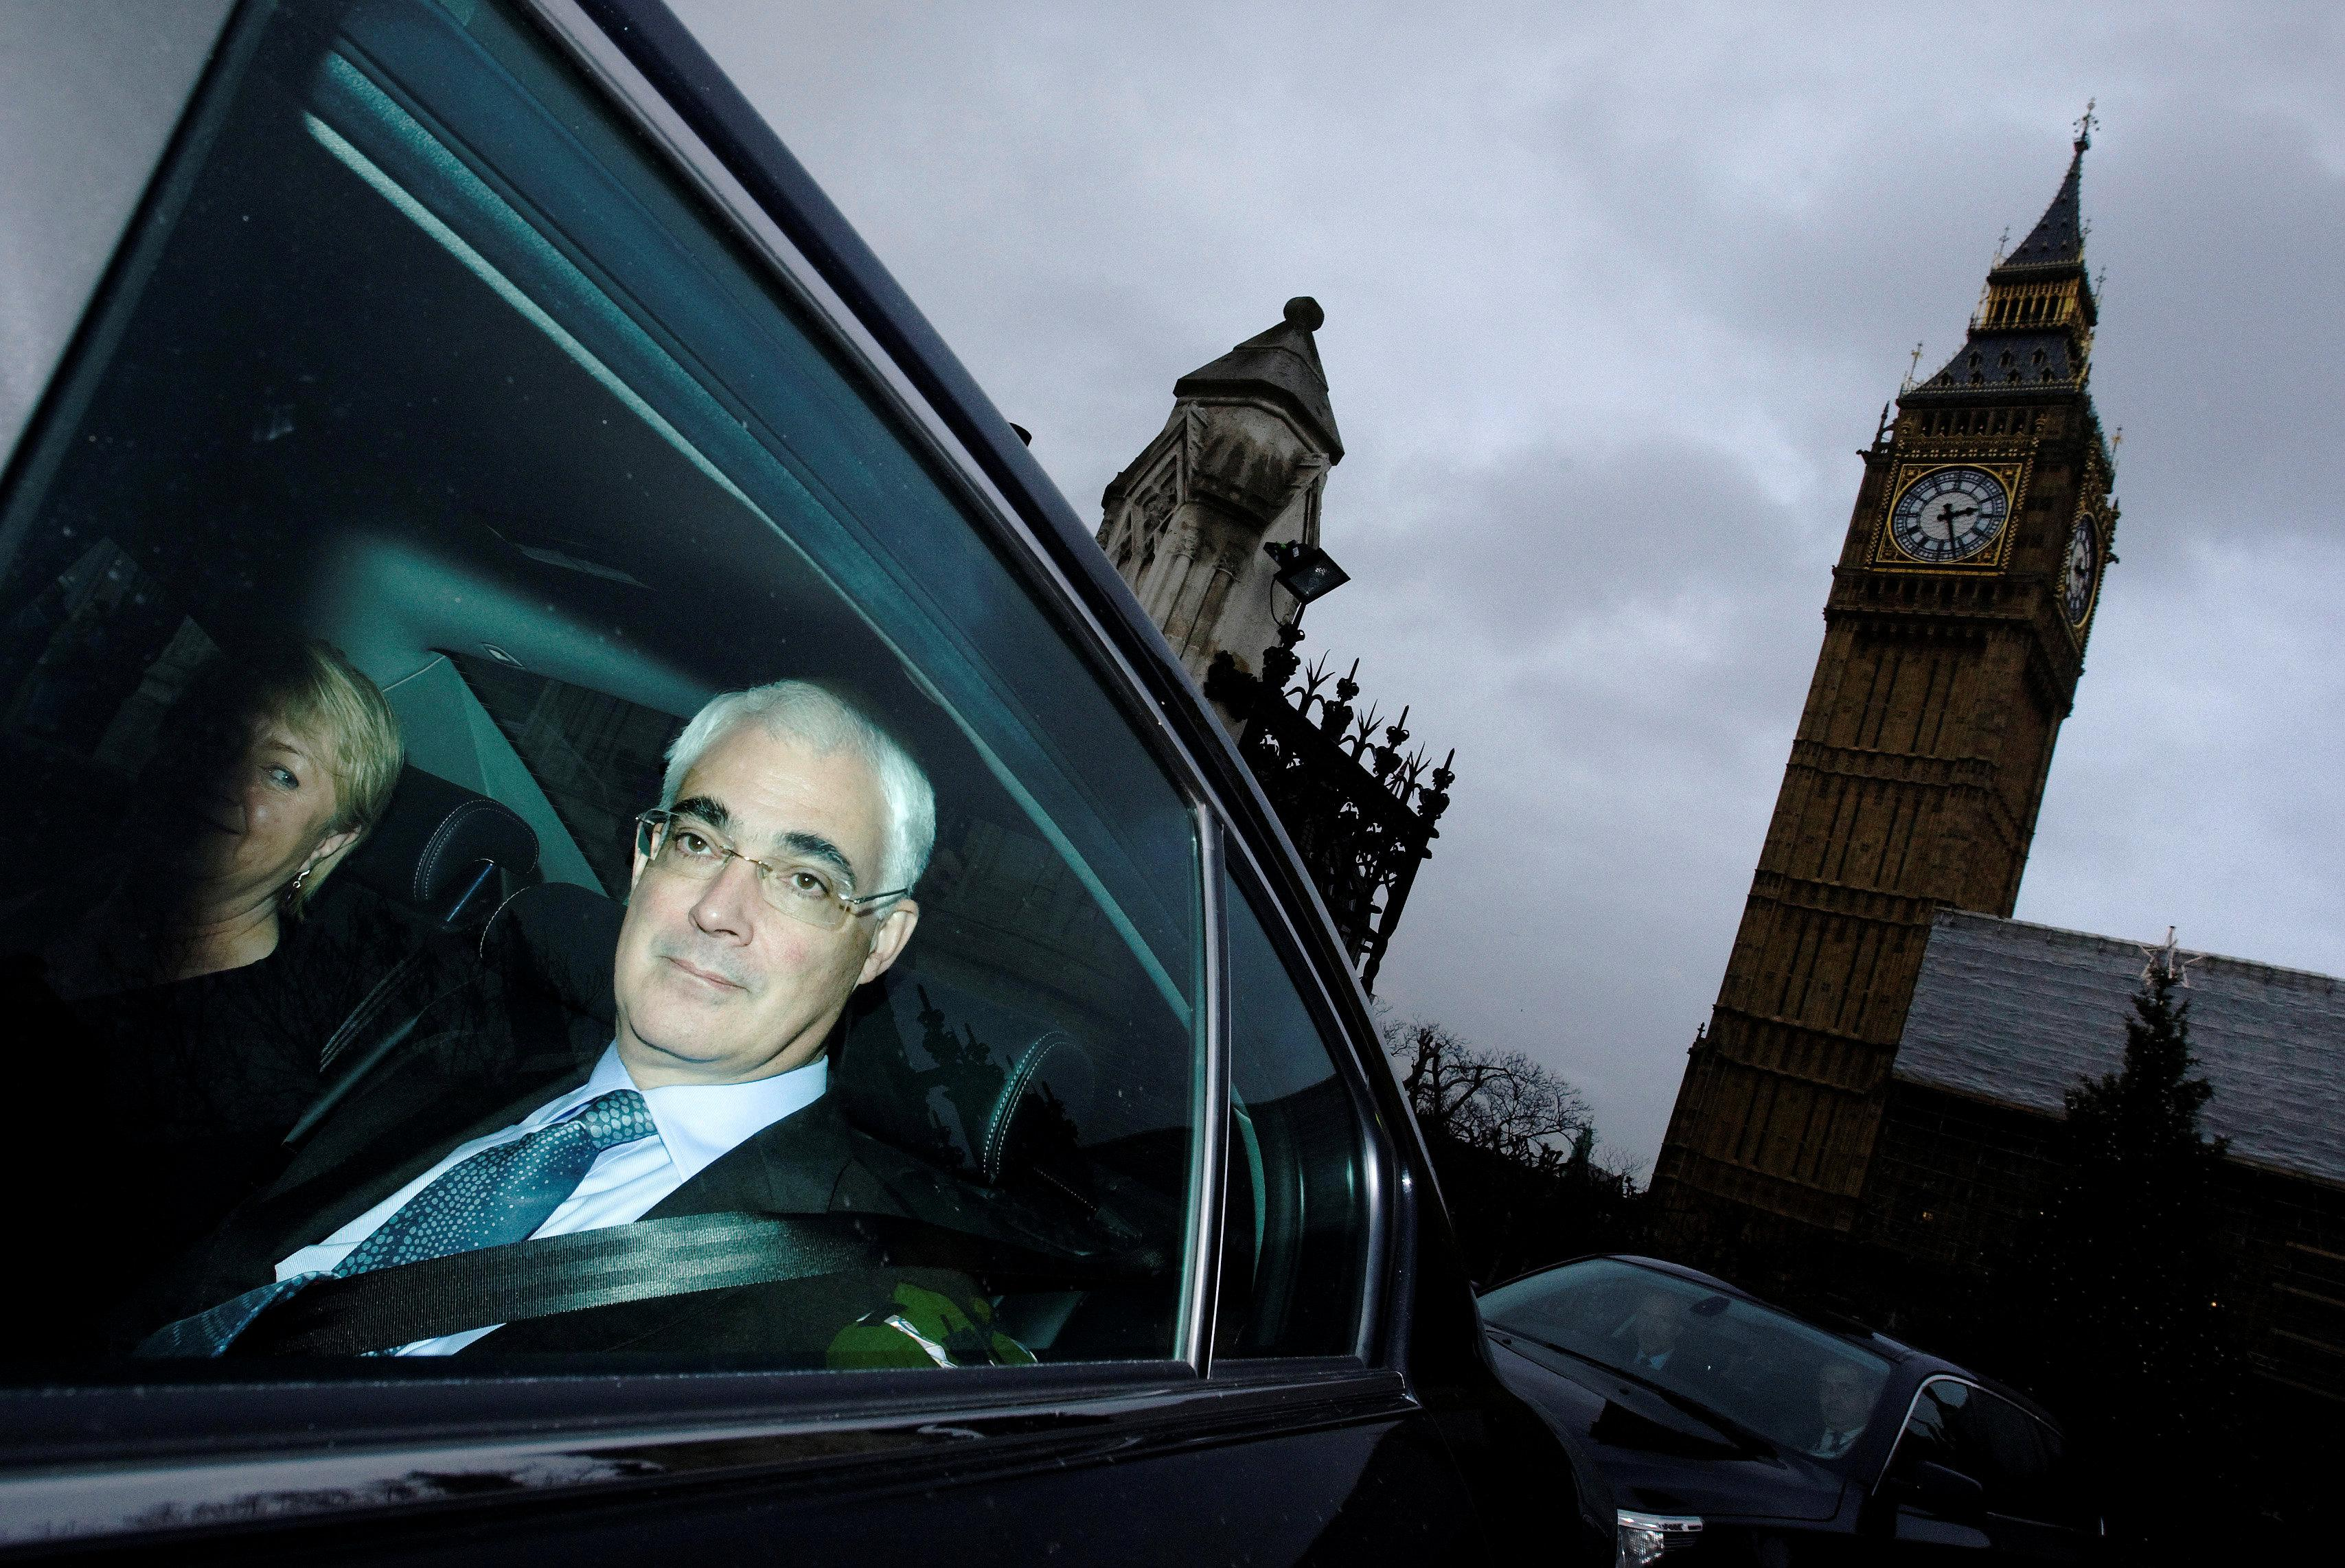 Alistair Darling, Britain's Chancellor of the Exchequer, leaves the Houses of Parliament after giving his pre-budget report, in London, Britain, December 9, 2009. Luke MacGregor/File photo